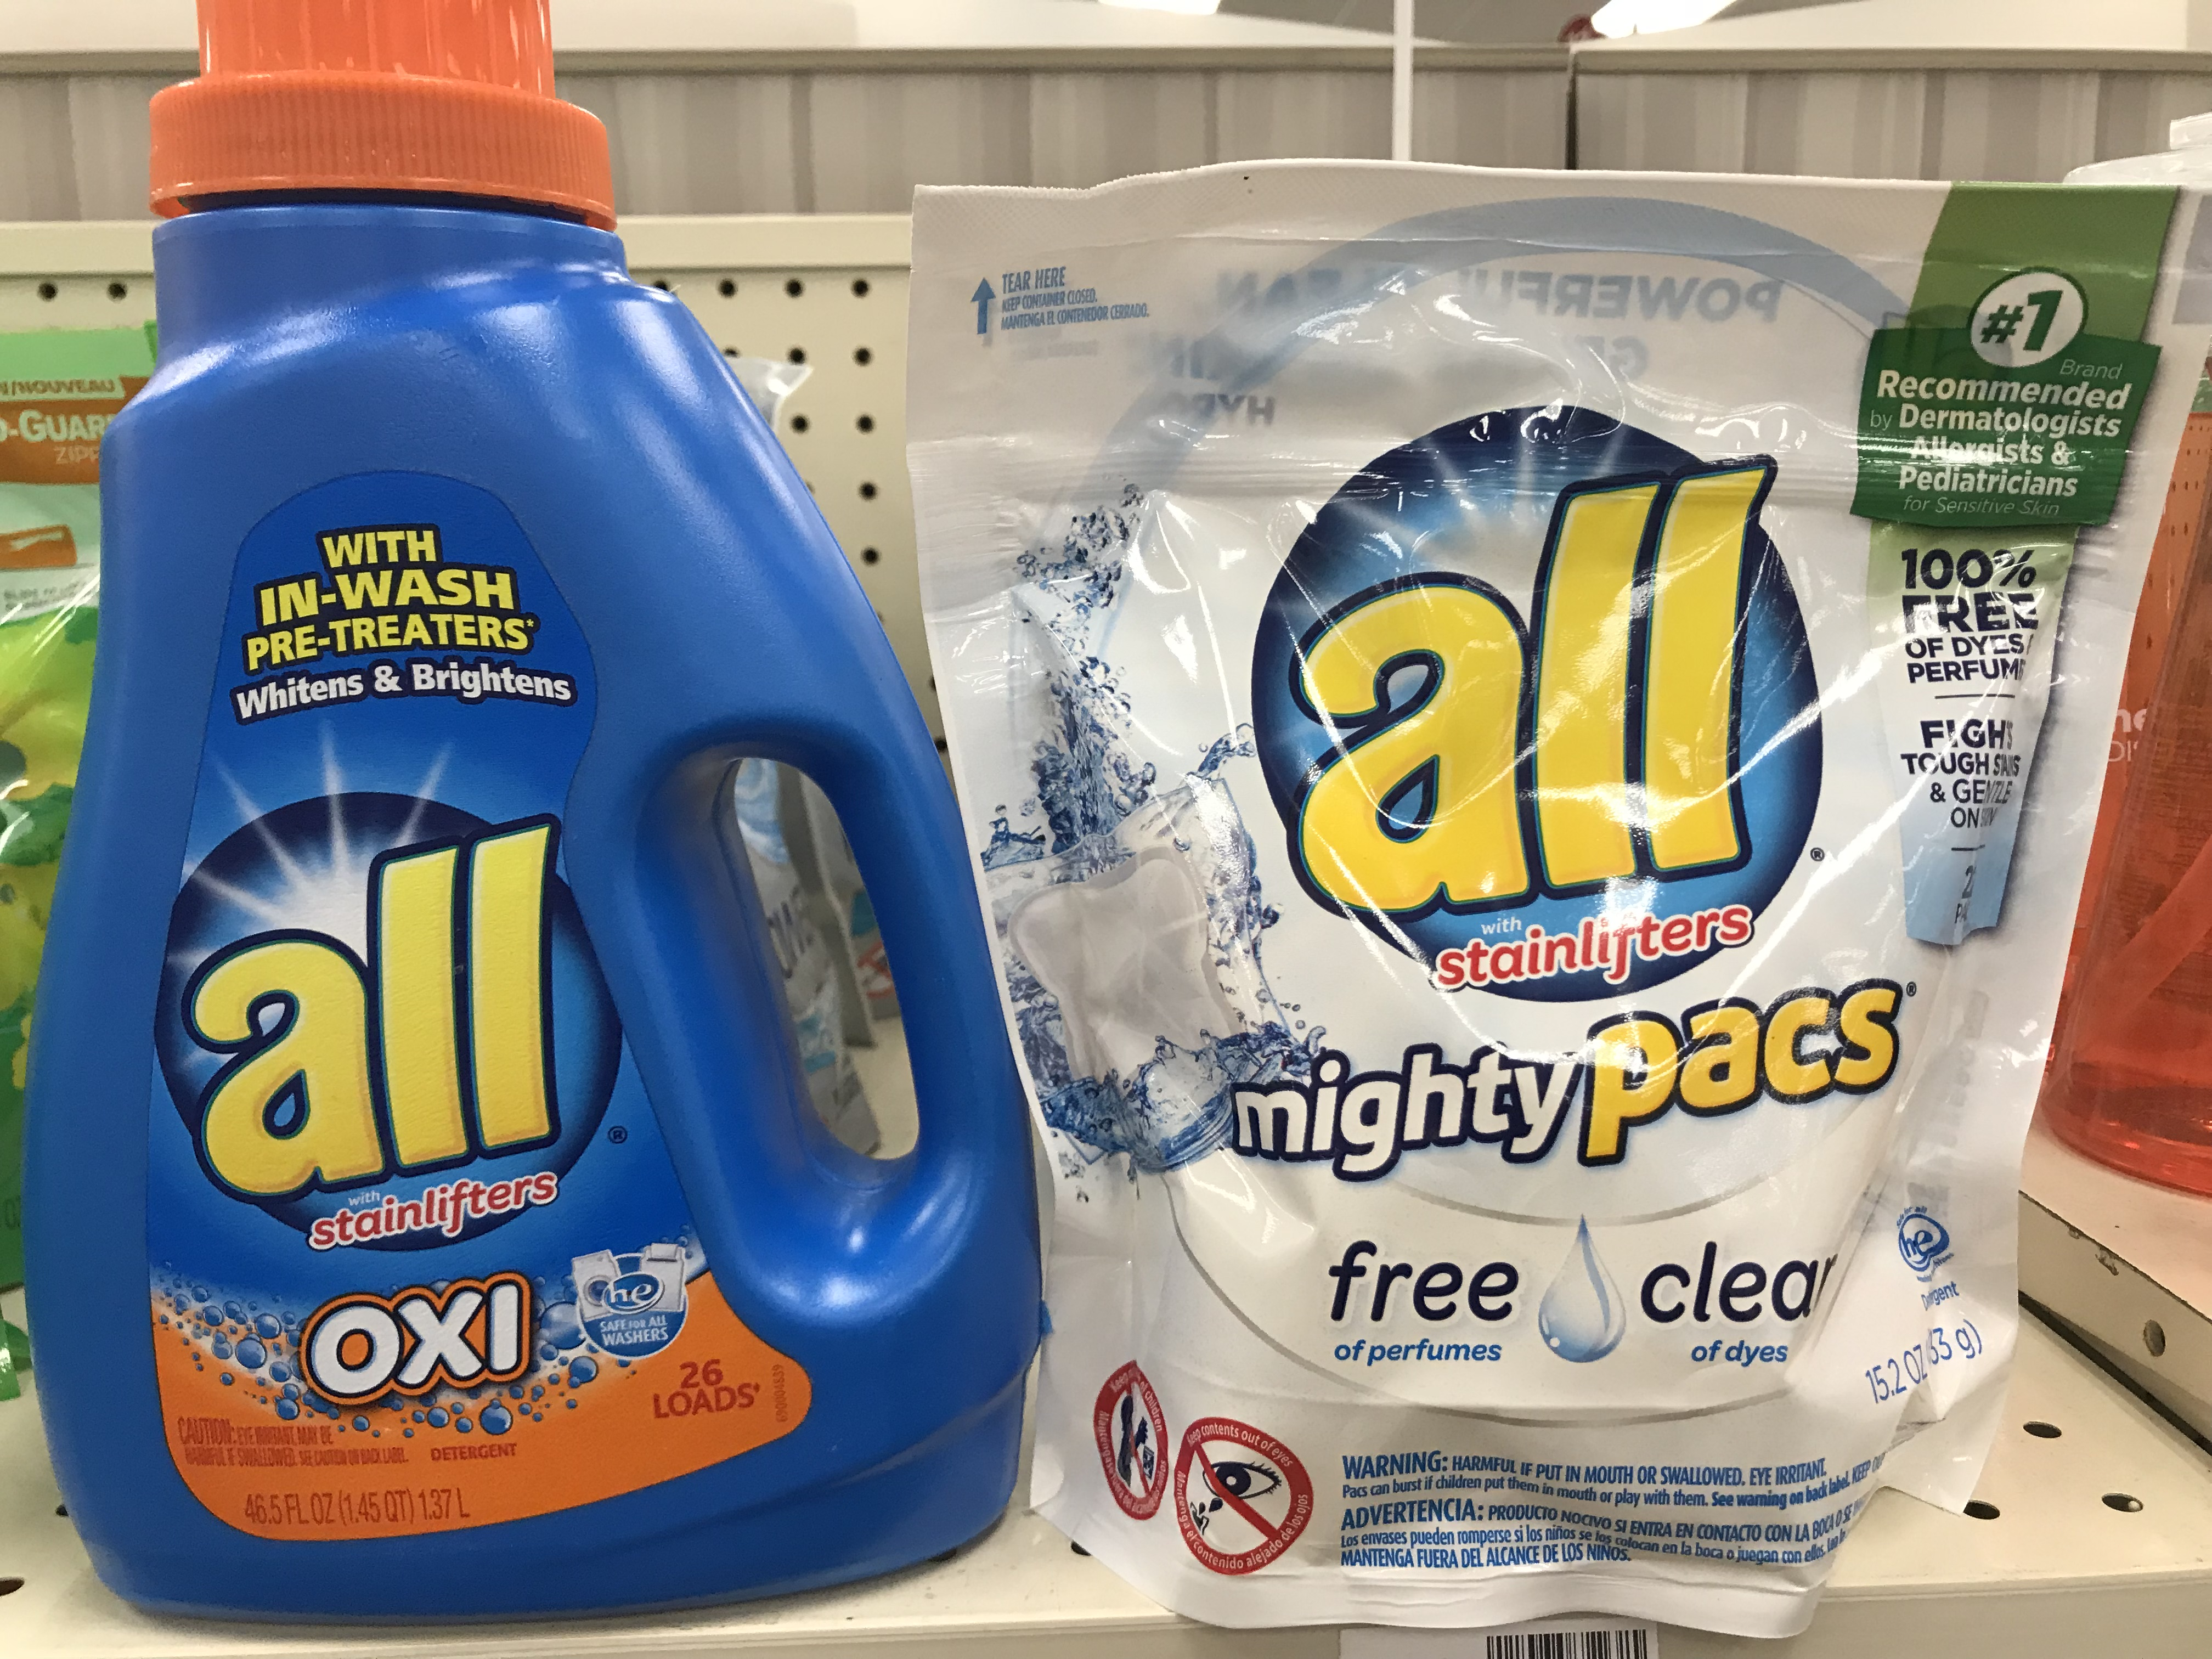 photograph about All Laundry Detergent Printable Coupons referred to as Fresh new $1/1 All Laundry Detergent Coupon \u003d Merely $1.99 at